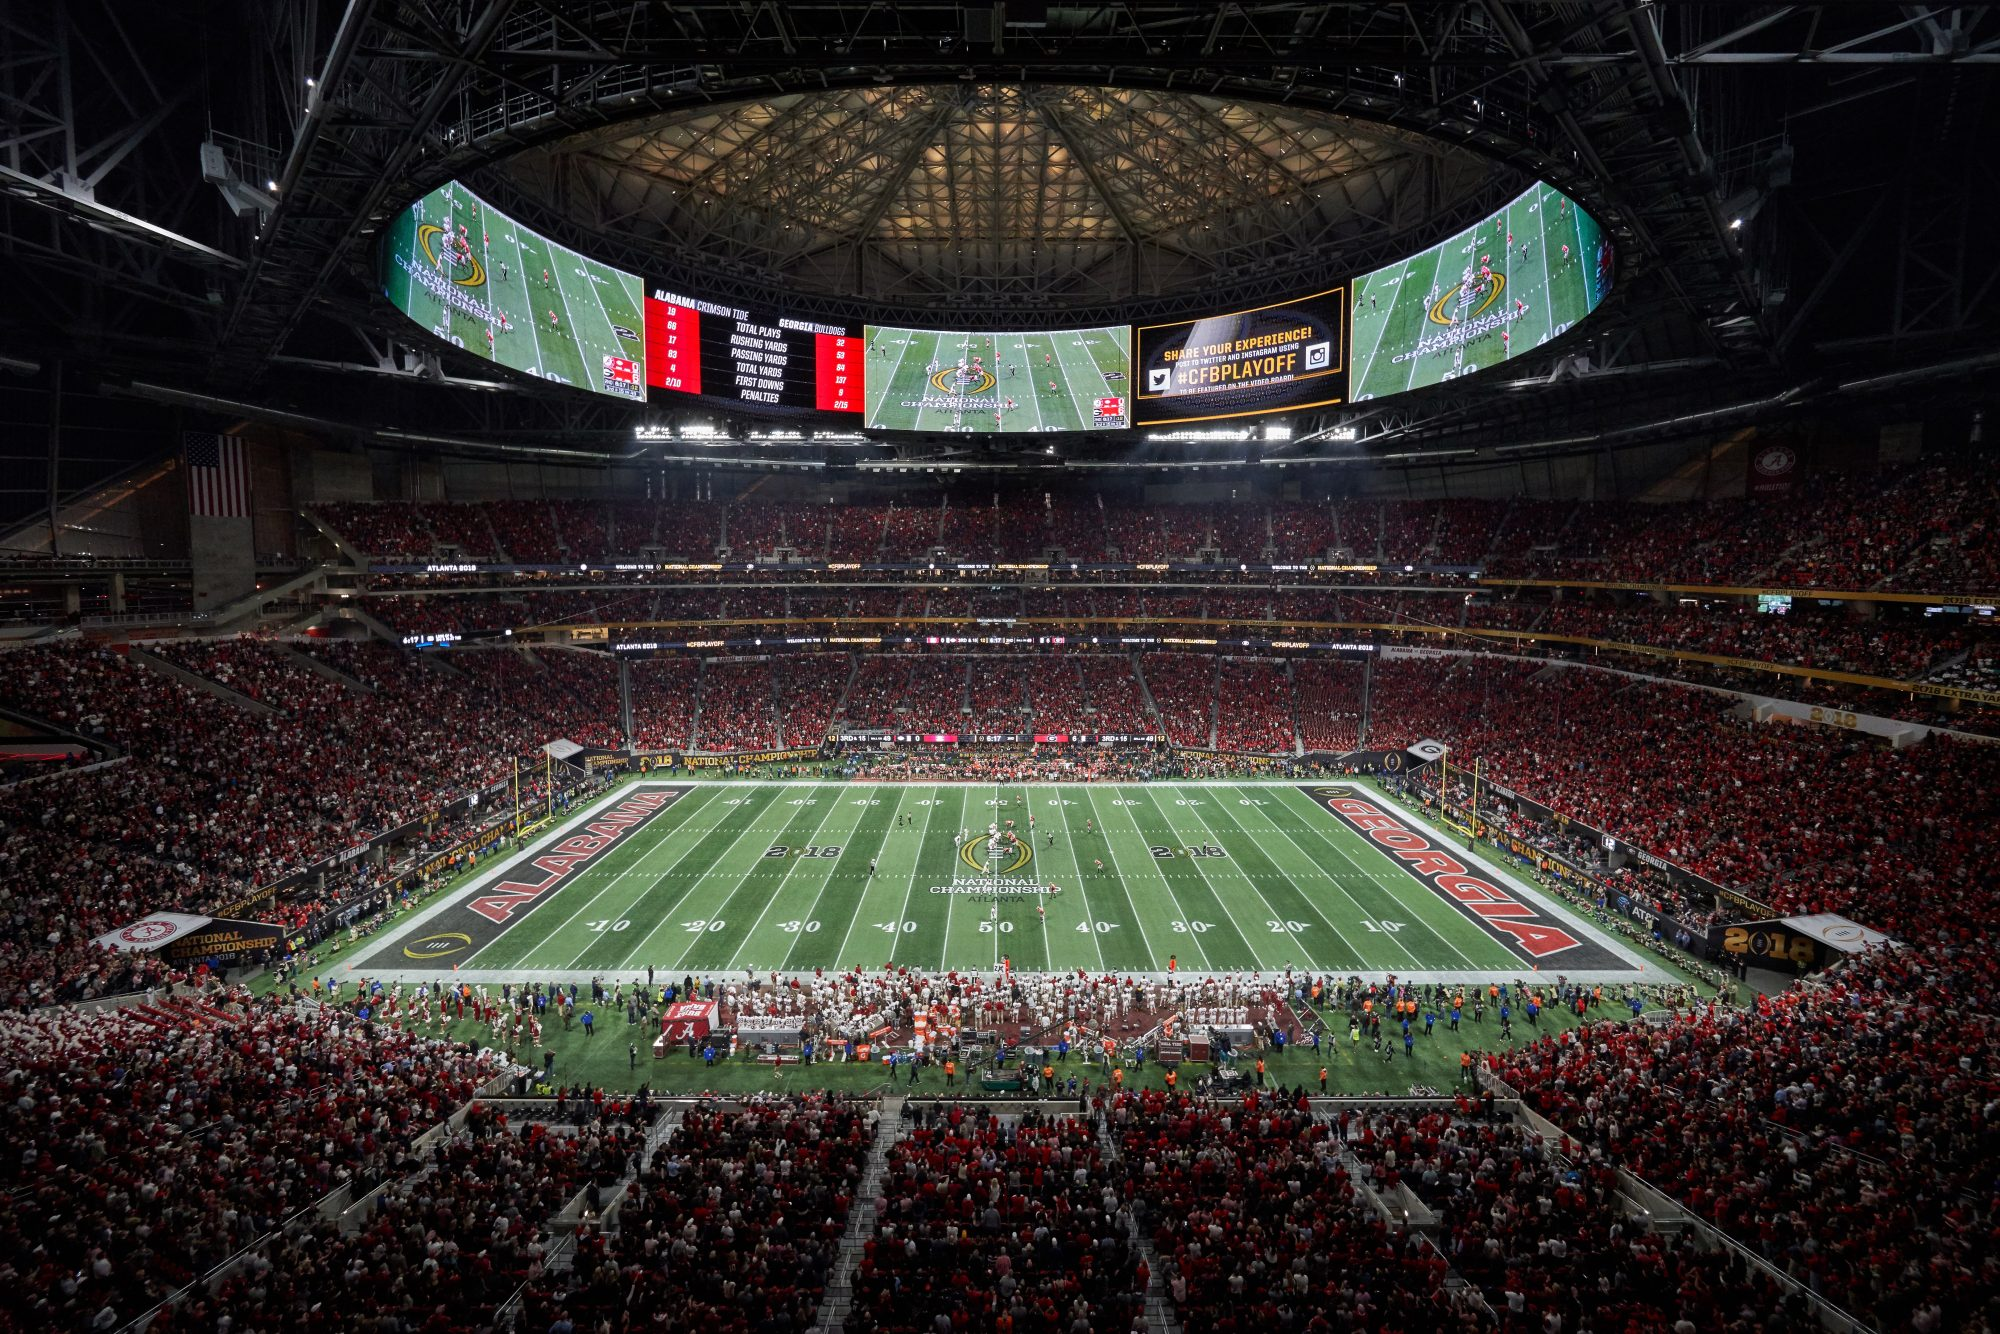 2018 College Football National Championship